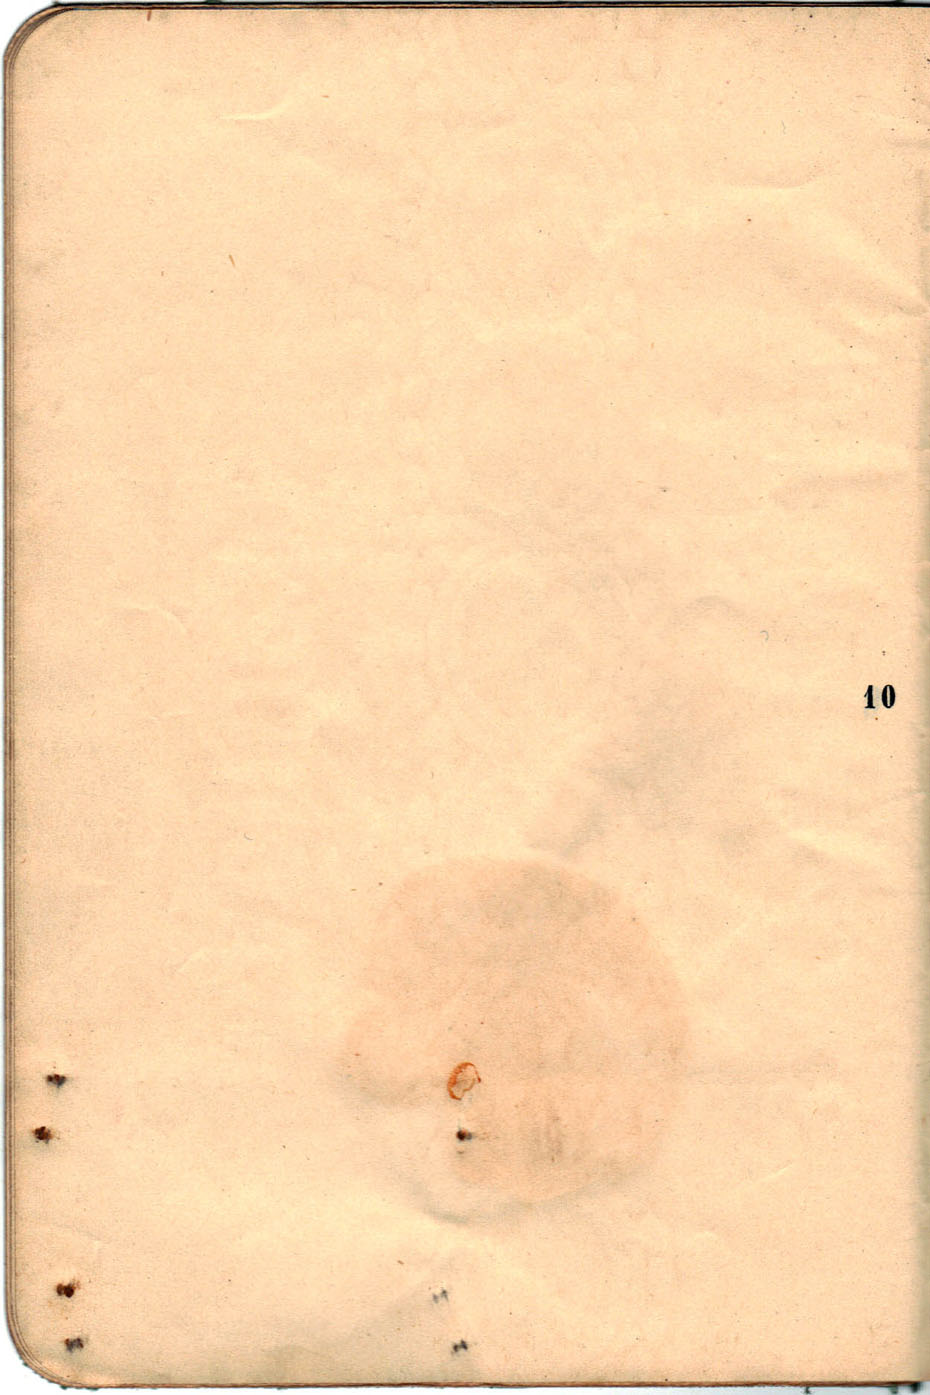 Polya's Russian Passport p10